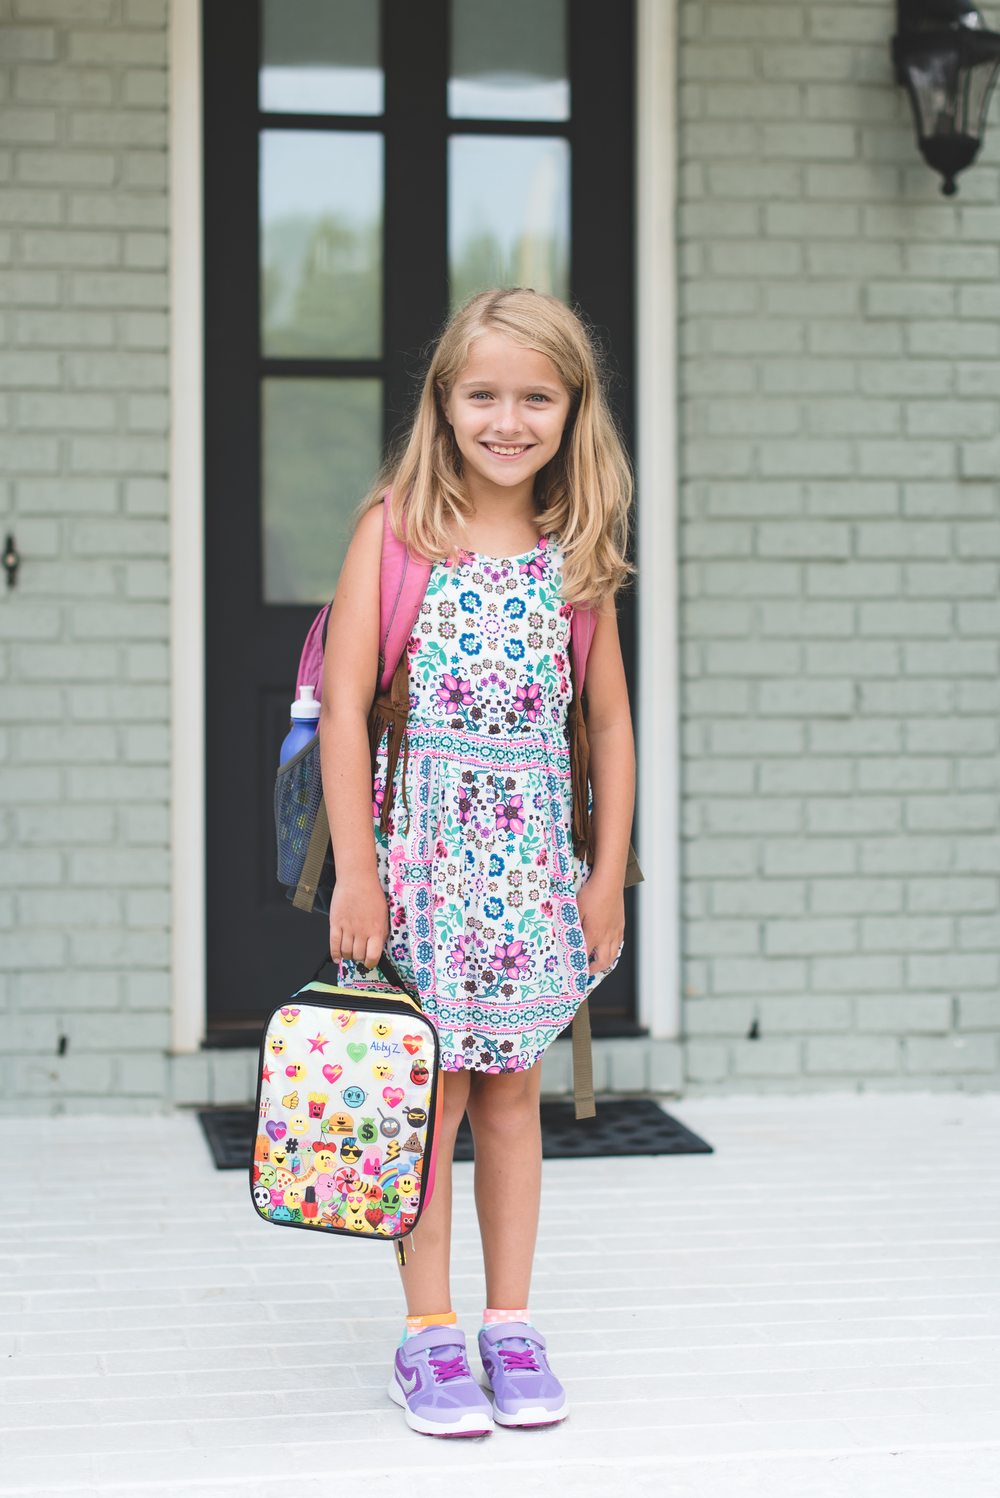 firstdaysofschool-3.jpg